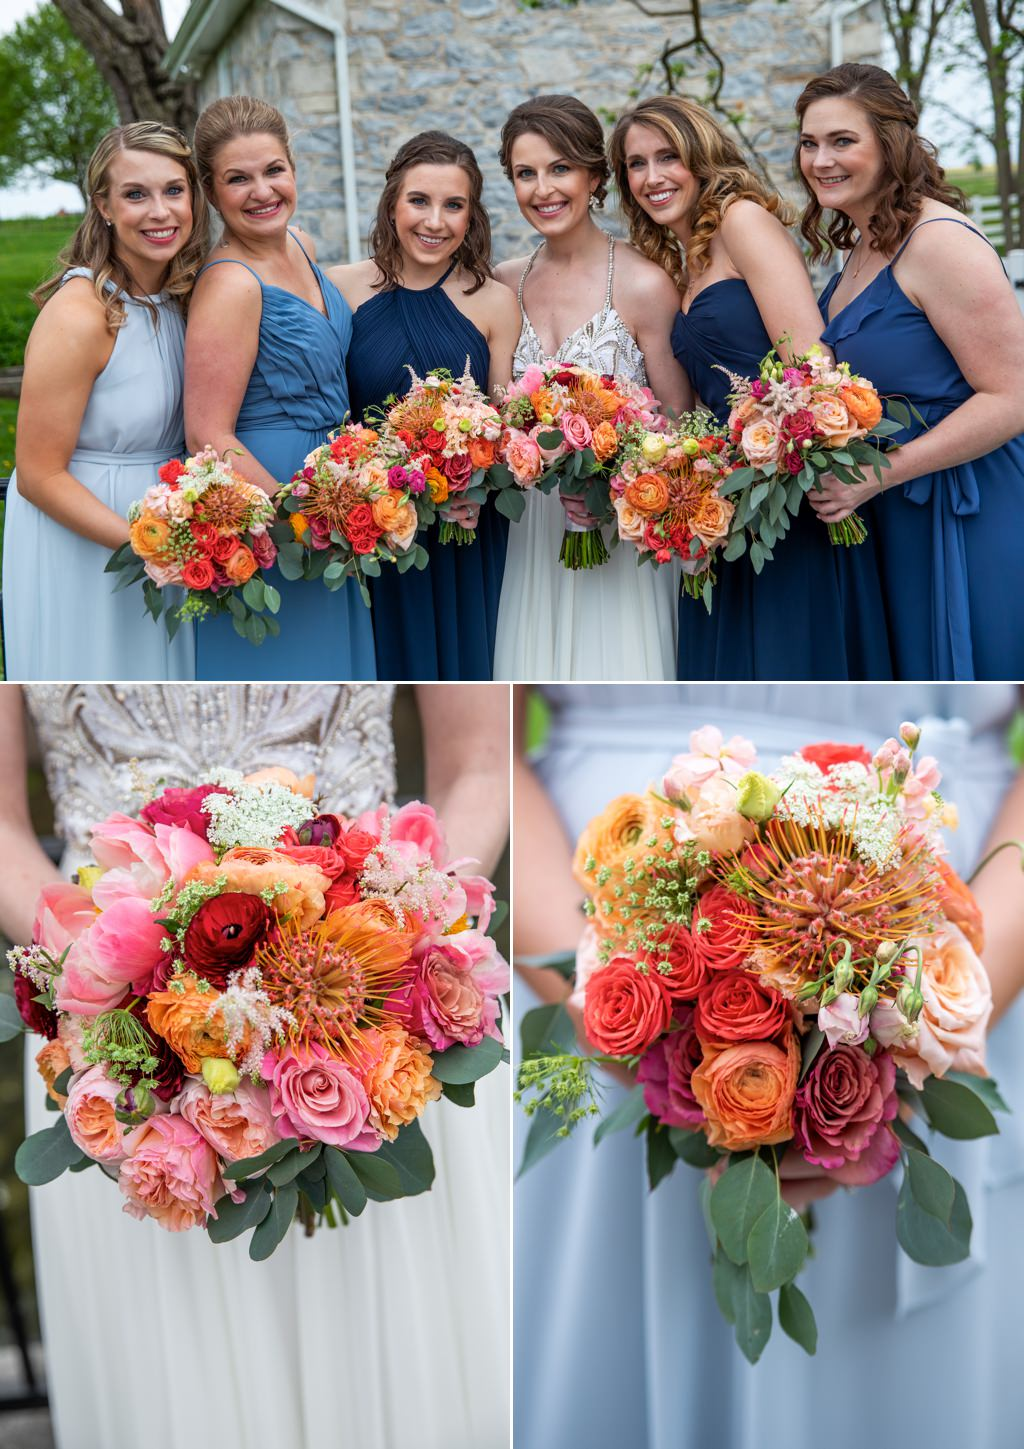 A bride and bridesmaids holding beautiful bouquets